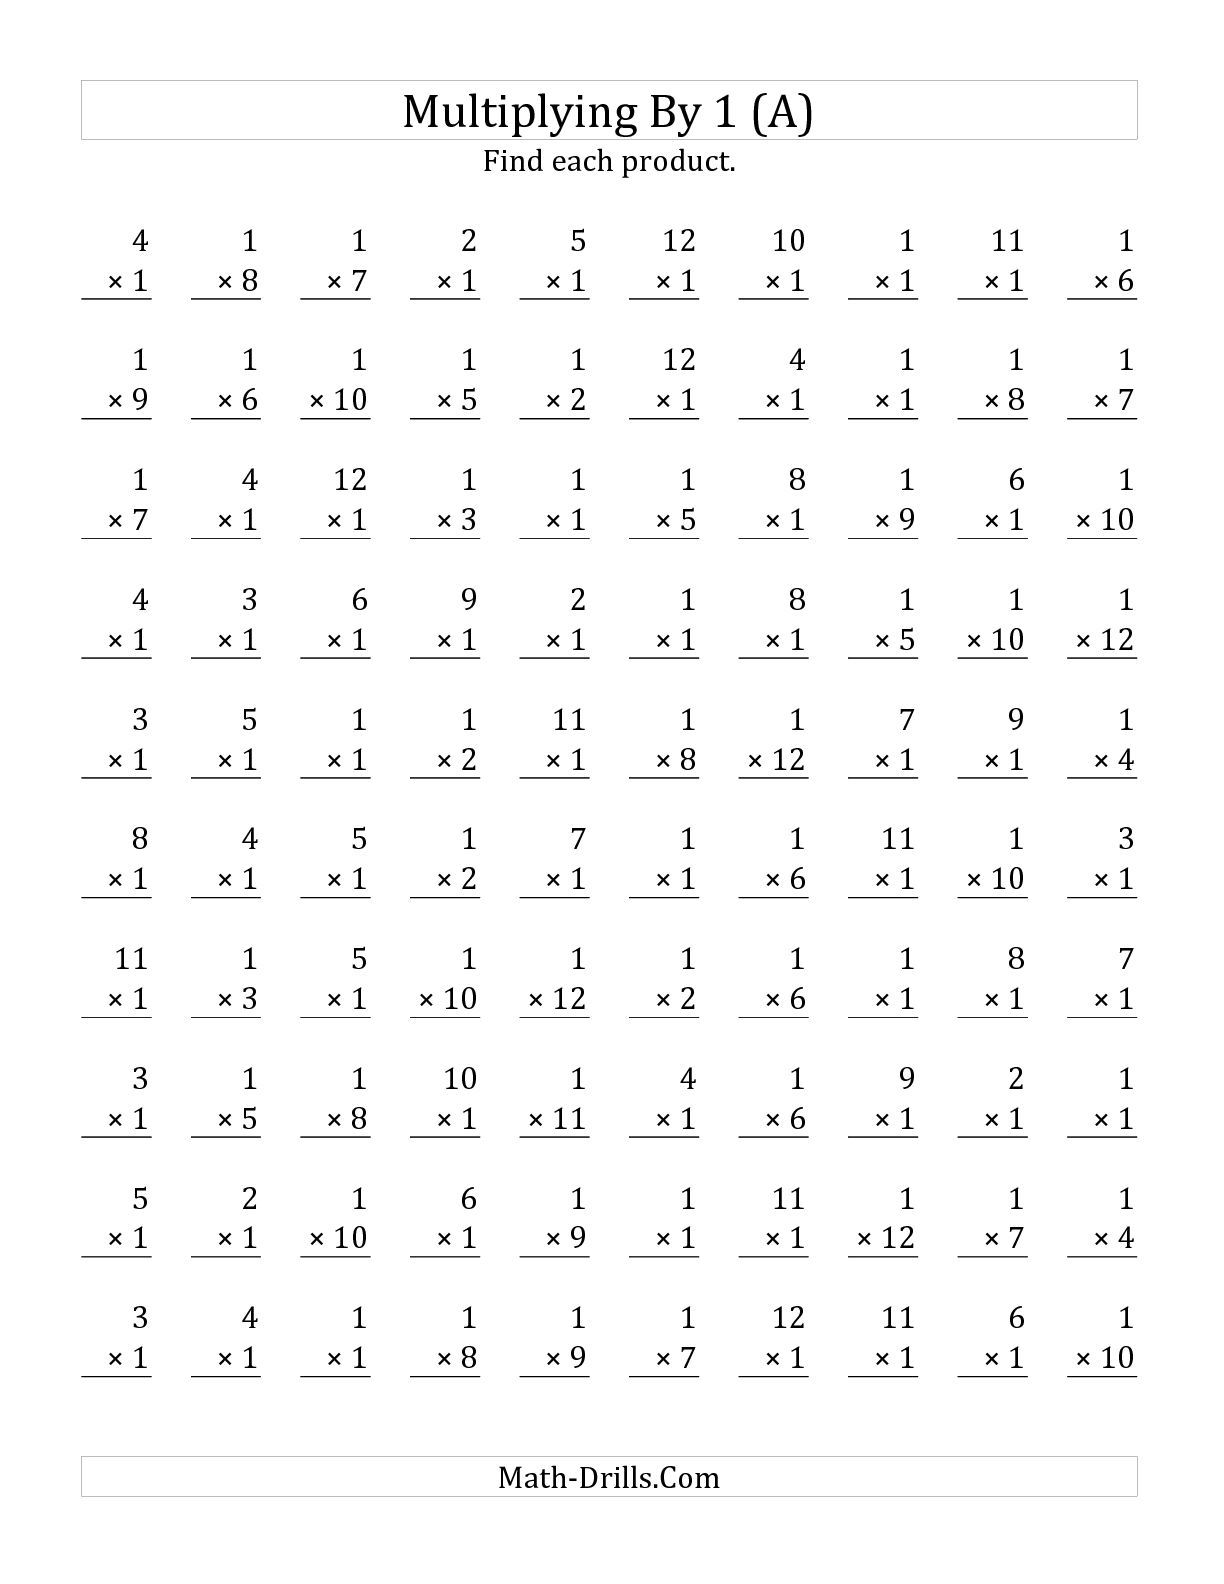 Worksheets Multiply Worksheets the multiplying 1 to 12 by a math worksheet from multiplication worksheet